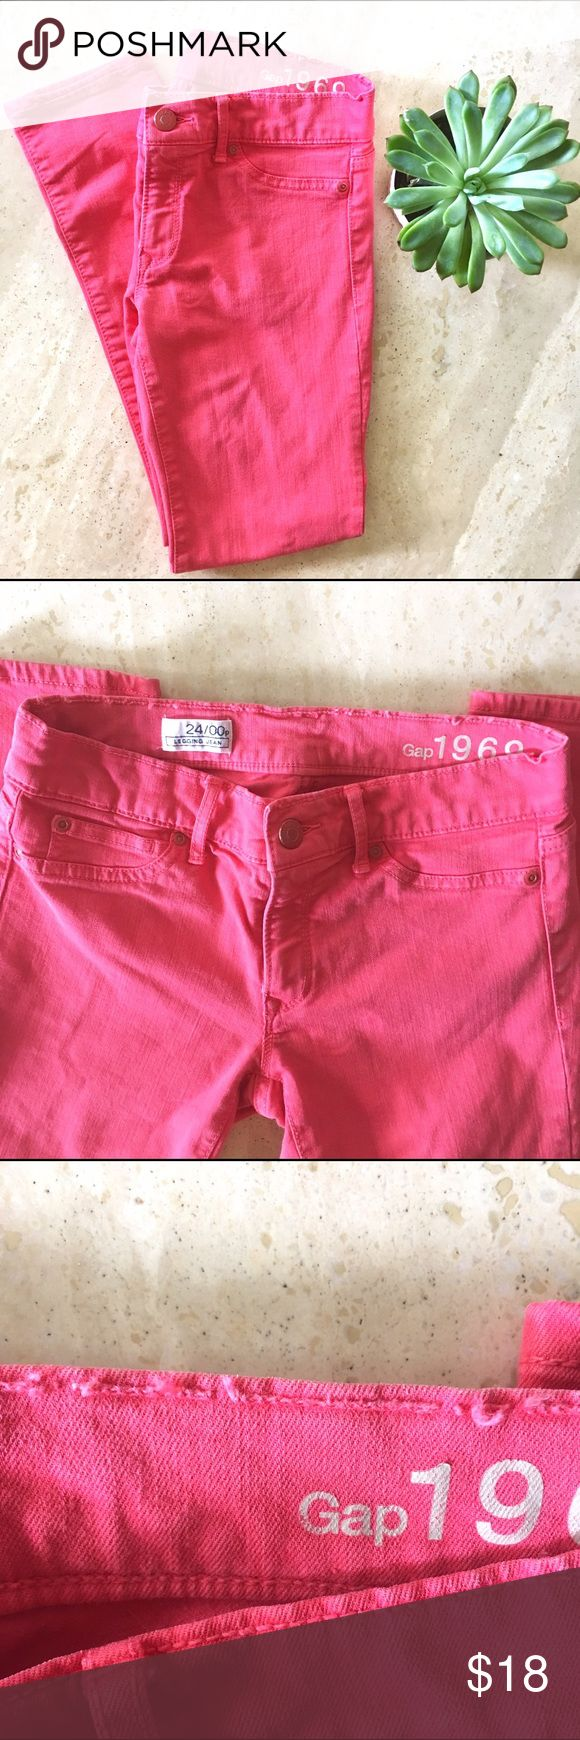 Gap Pink Legging Jeans Super comfortable and stretchy Gap Legging jeans in a lovely pink/coral color. Lightly faded and with some distress at stitching due to wear (see photos) but otherwise excellent condition! Gap 1969. Size 24/00p. Length is good for shorter ladies :) GAP Jeans Skinny